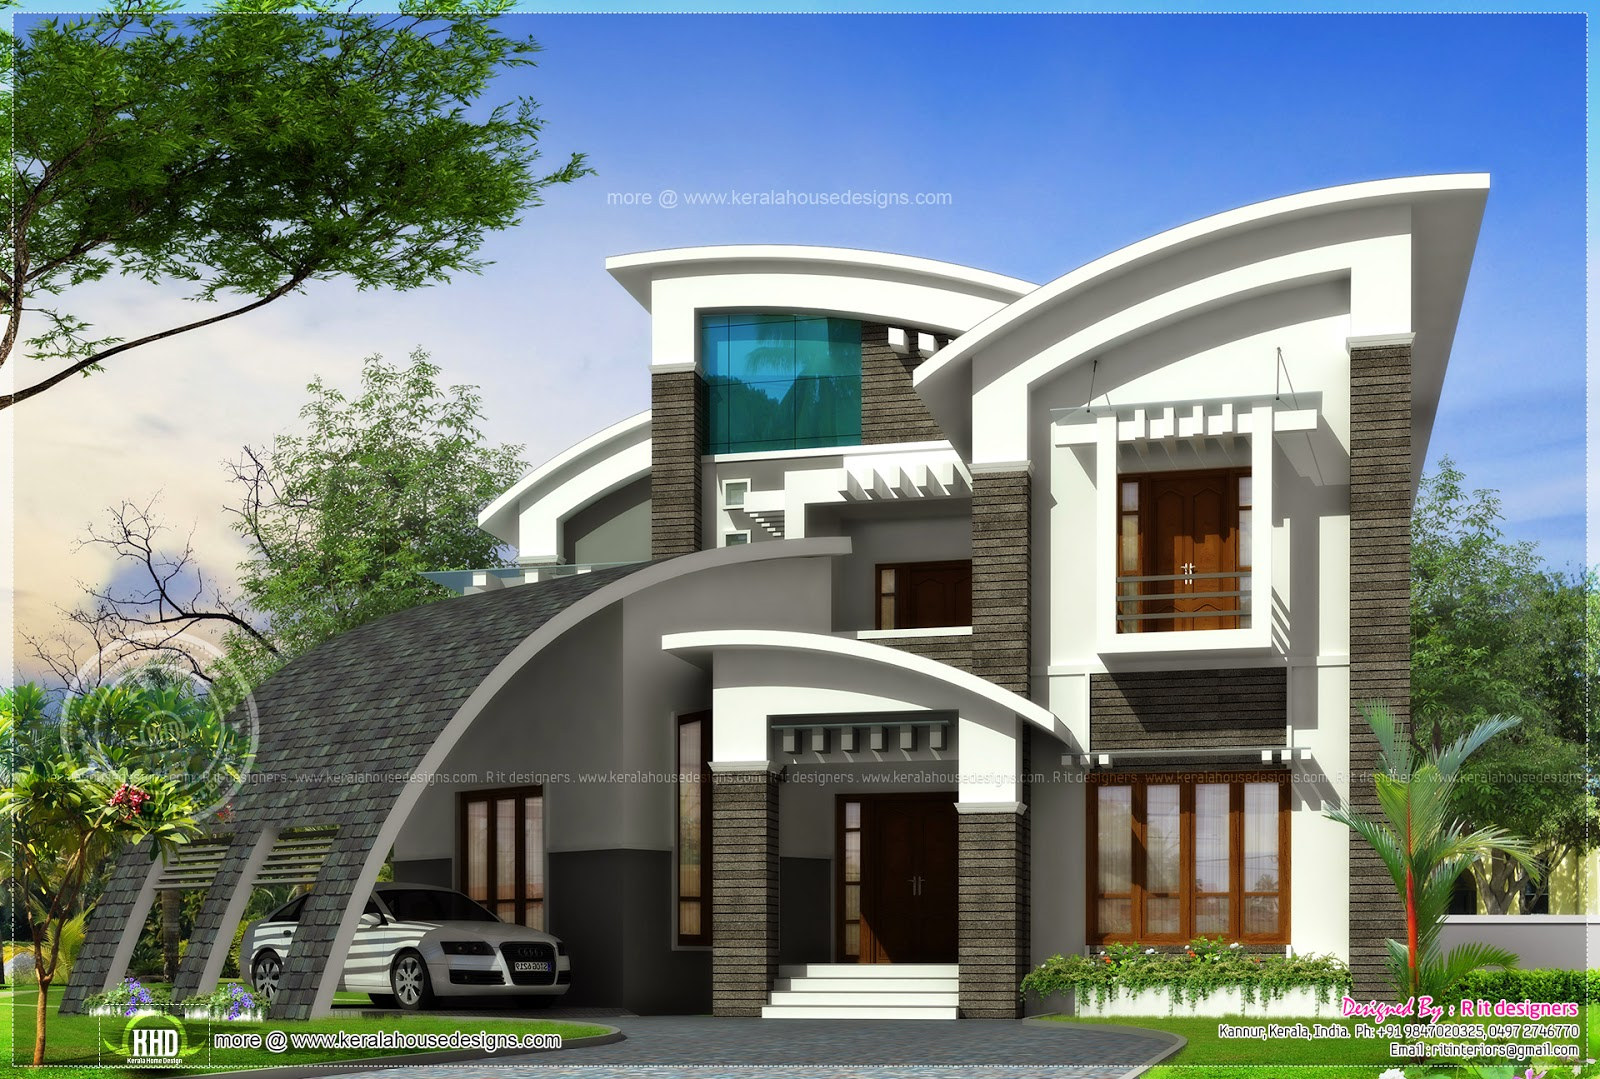 Super luxury ultra modern house design kerala home for Modern house design